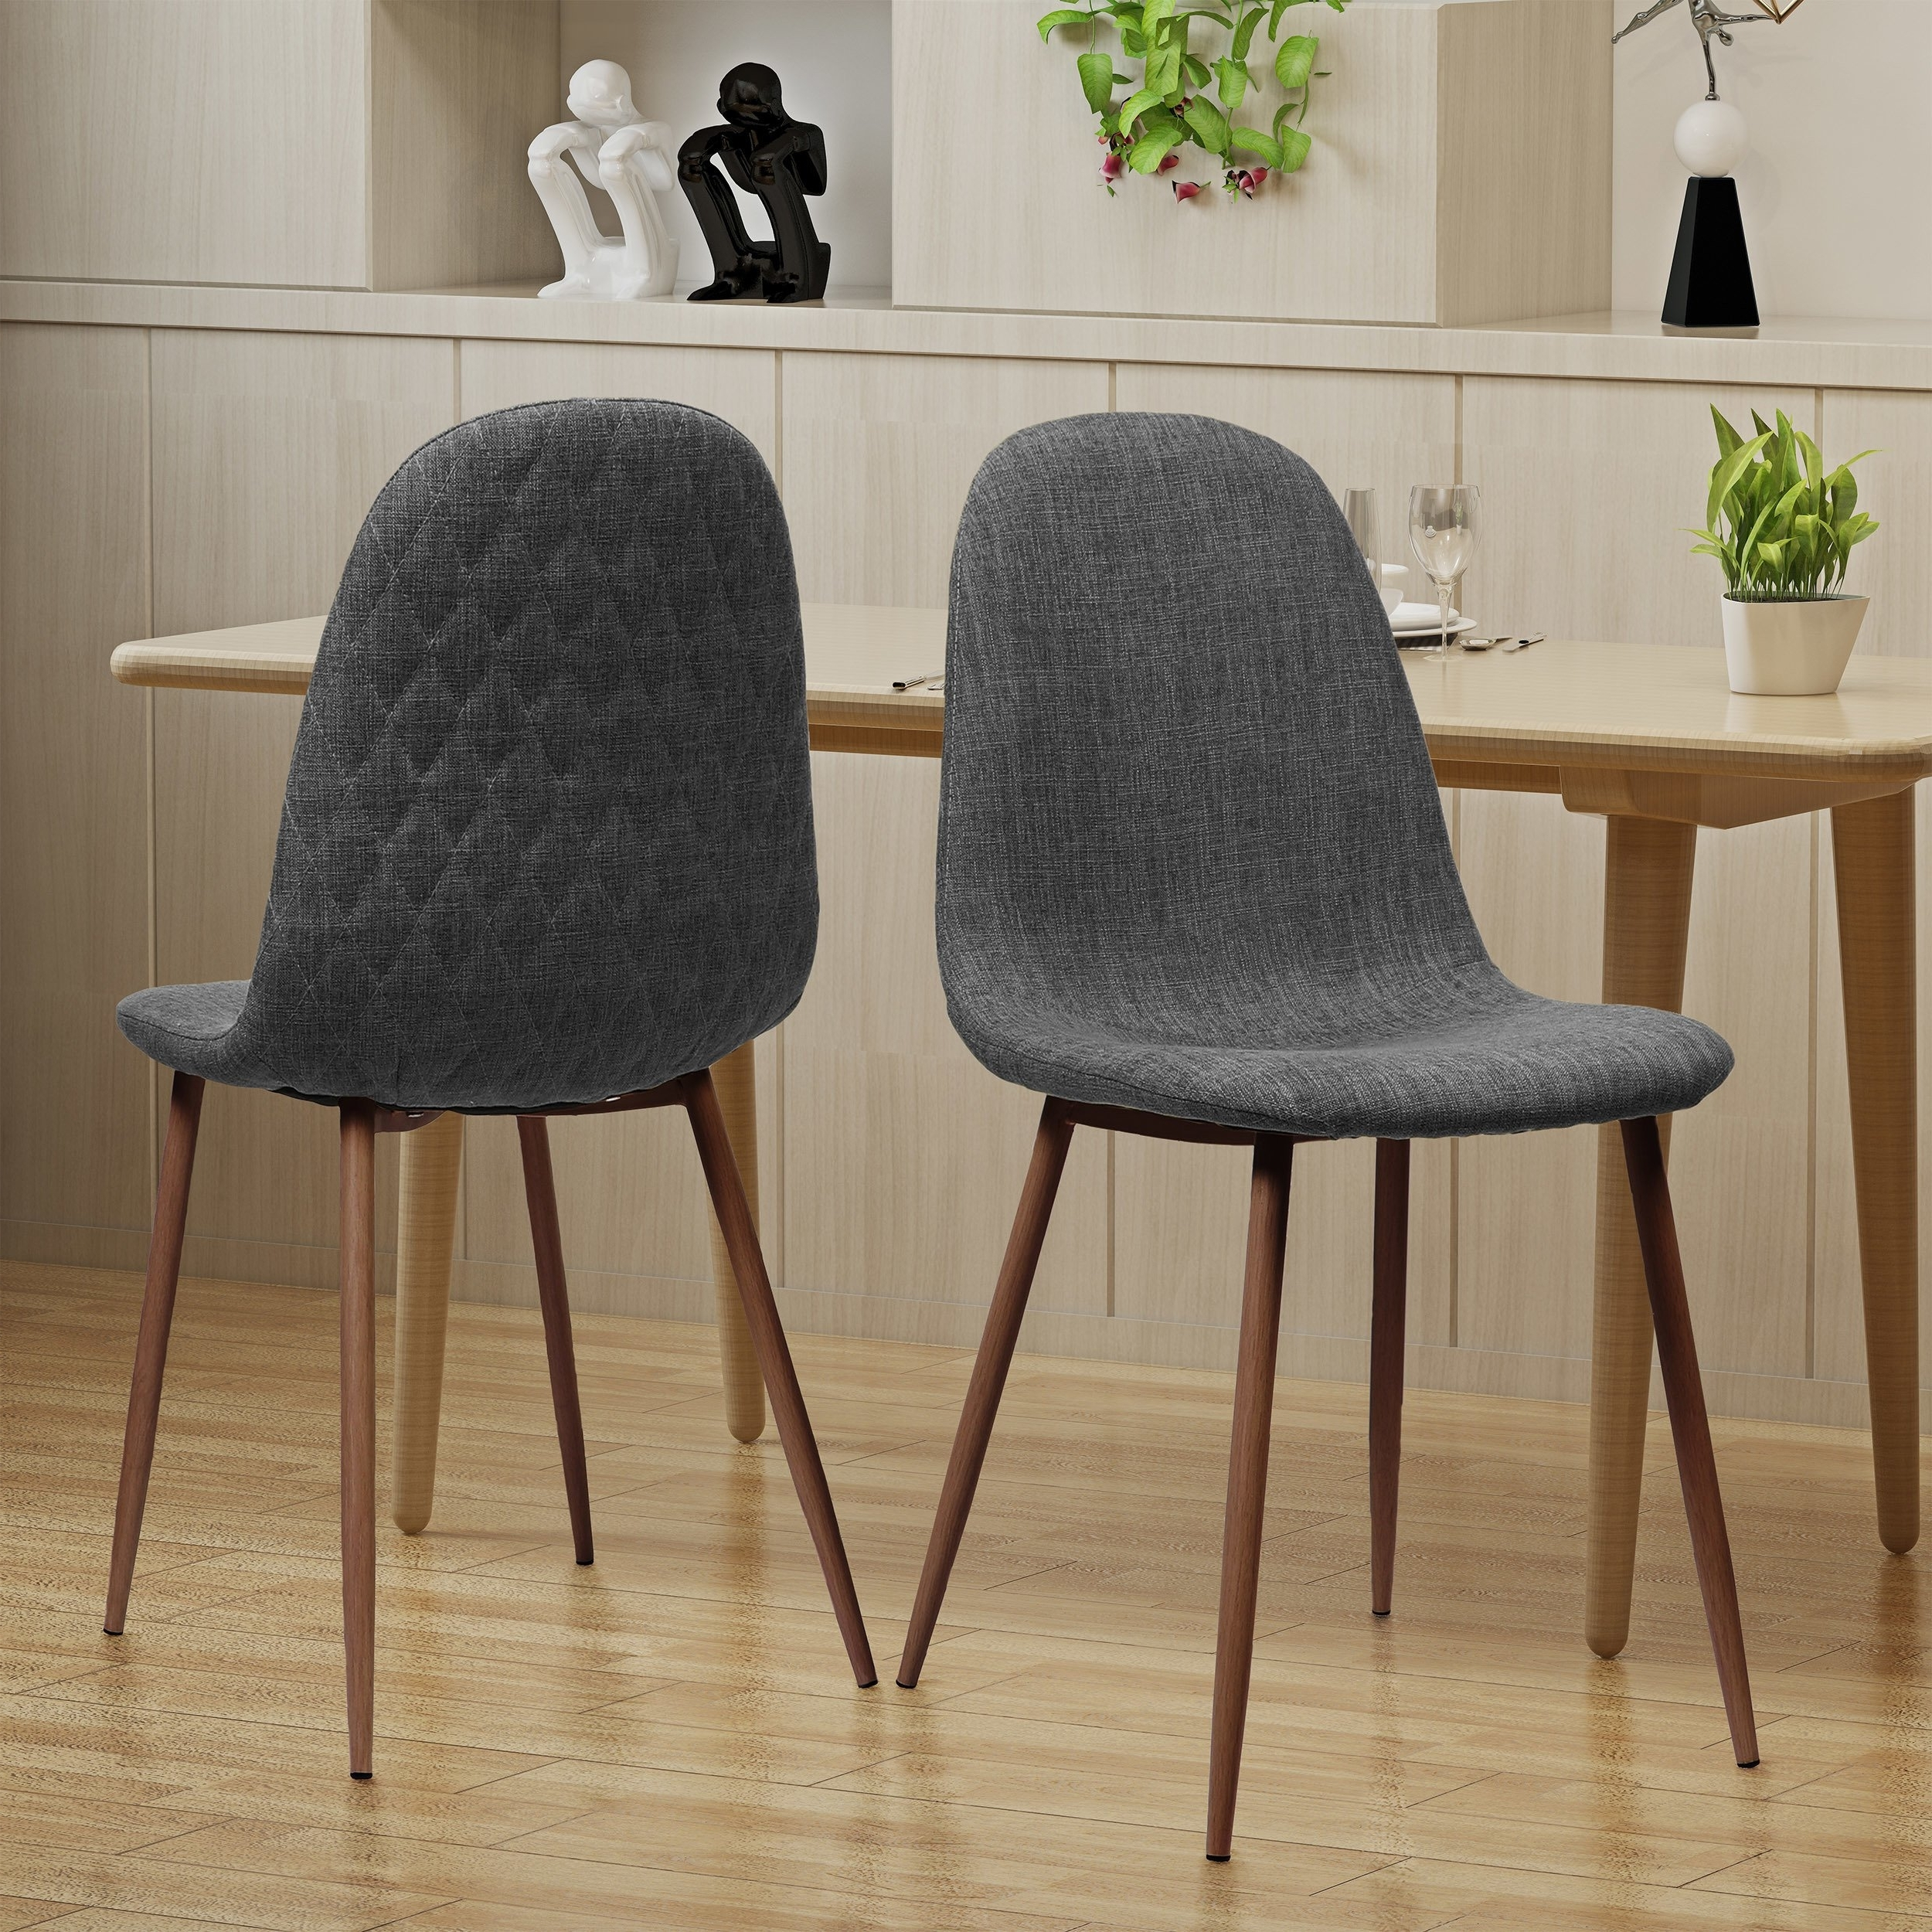 Caden 6 Piece Dining Sets With Upholstered Side Chair Throughout Latest Shop Caden Mid Century Fabric Dining Chair (Set Of 2)Christopher (View 2 of 25)